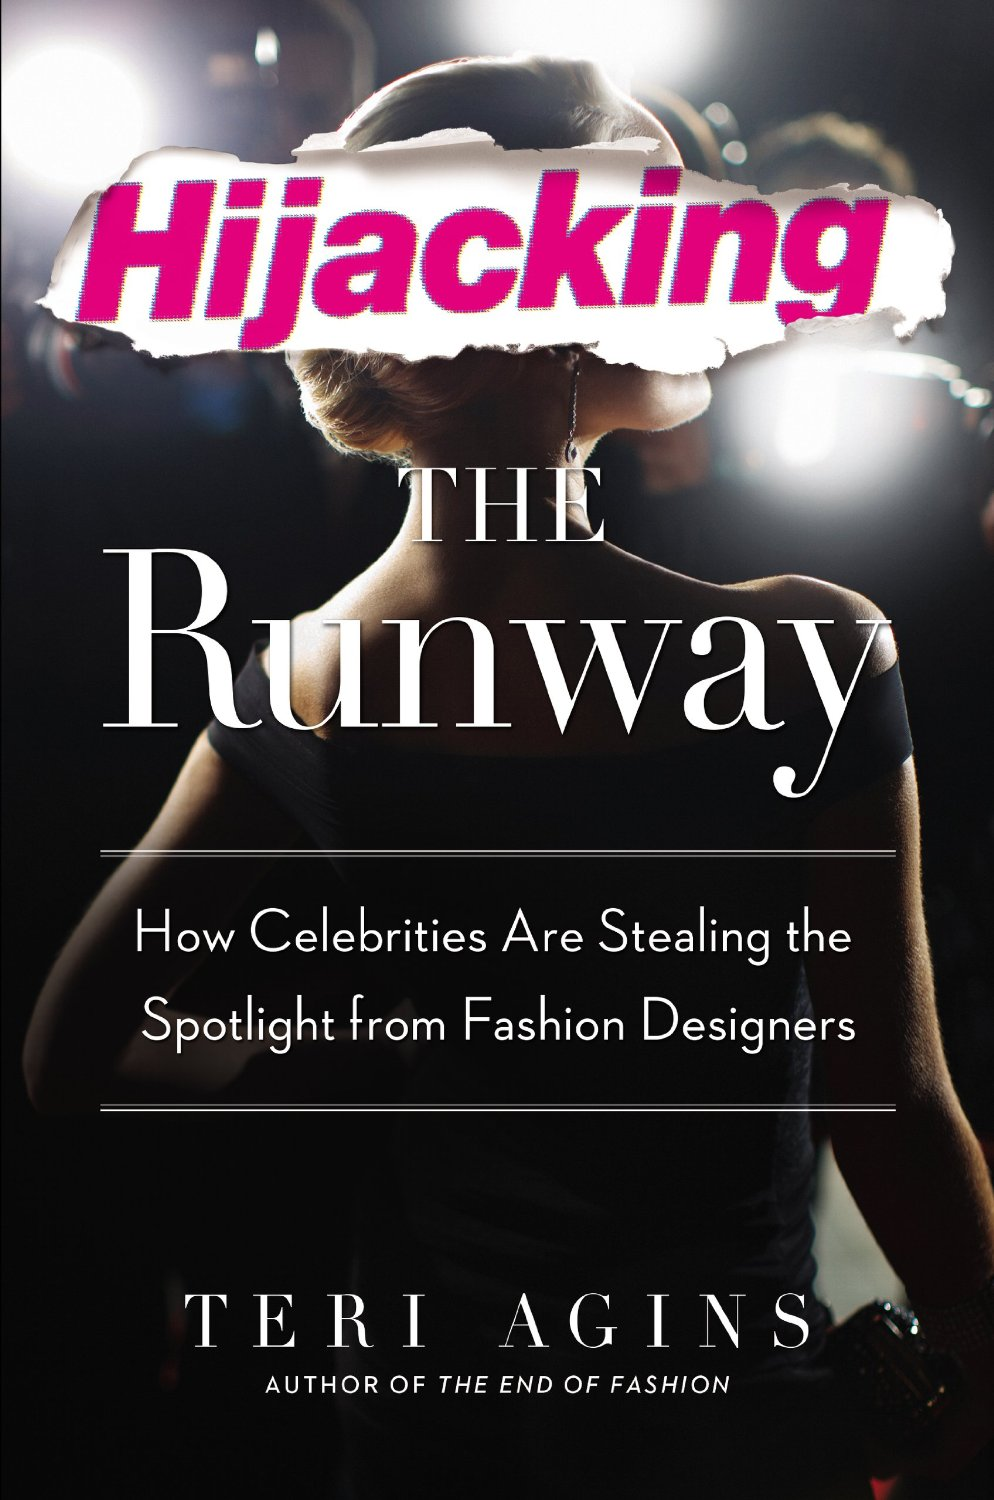 hijacking the runway.jpg